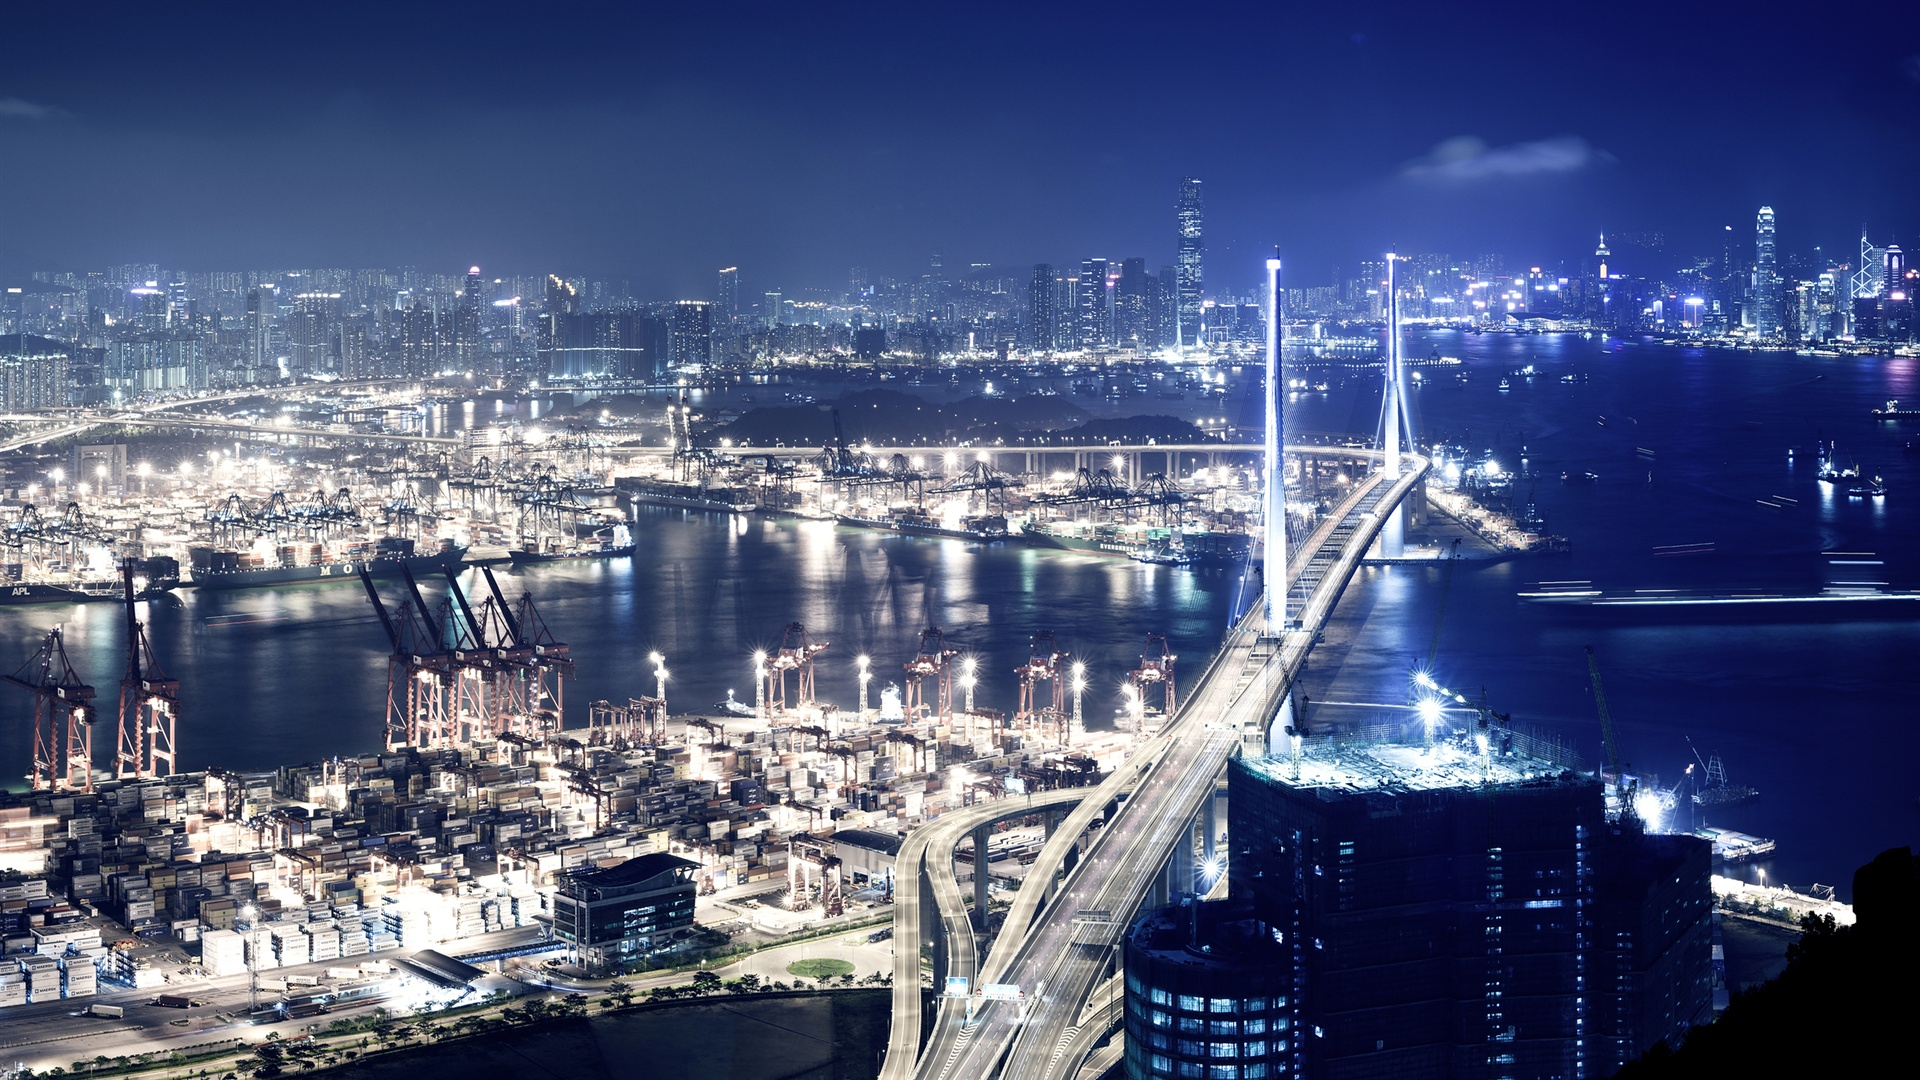 Wallpaper Port City At Night 2560x1600 HD Picture Image